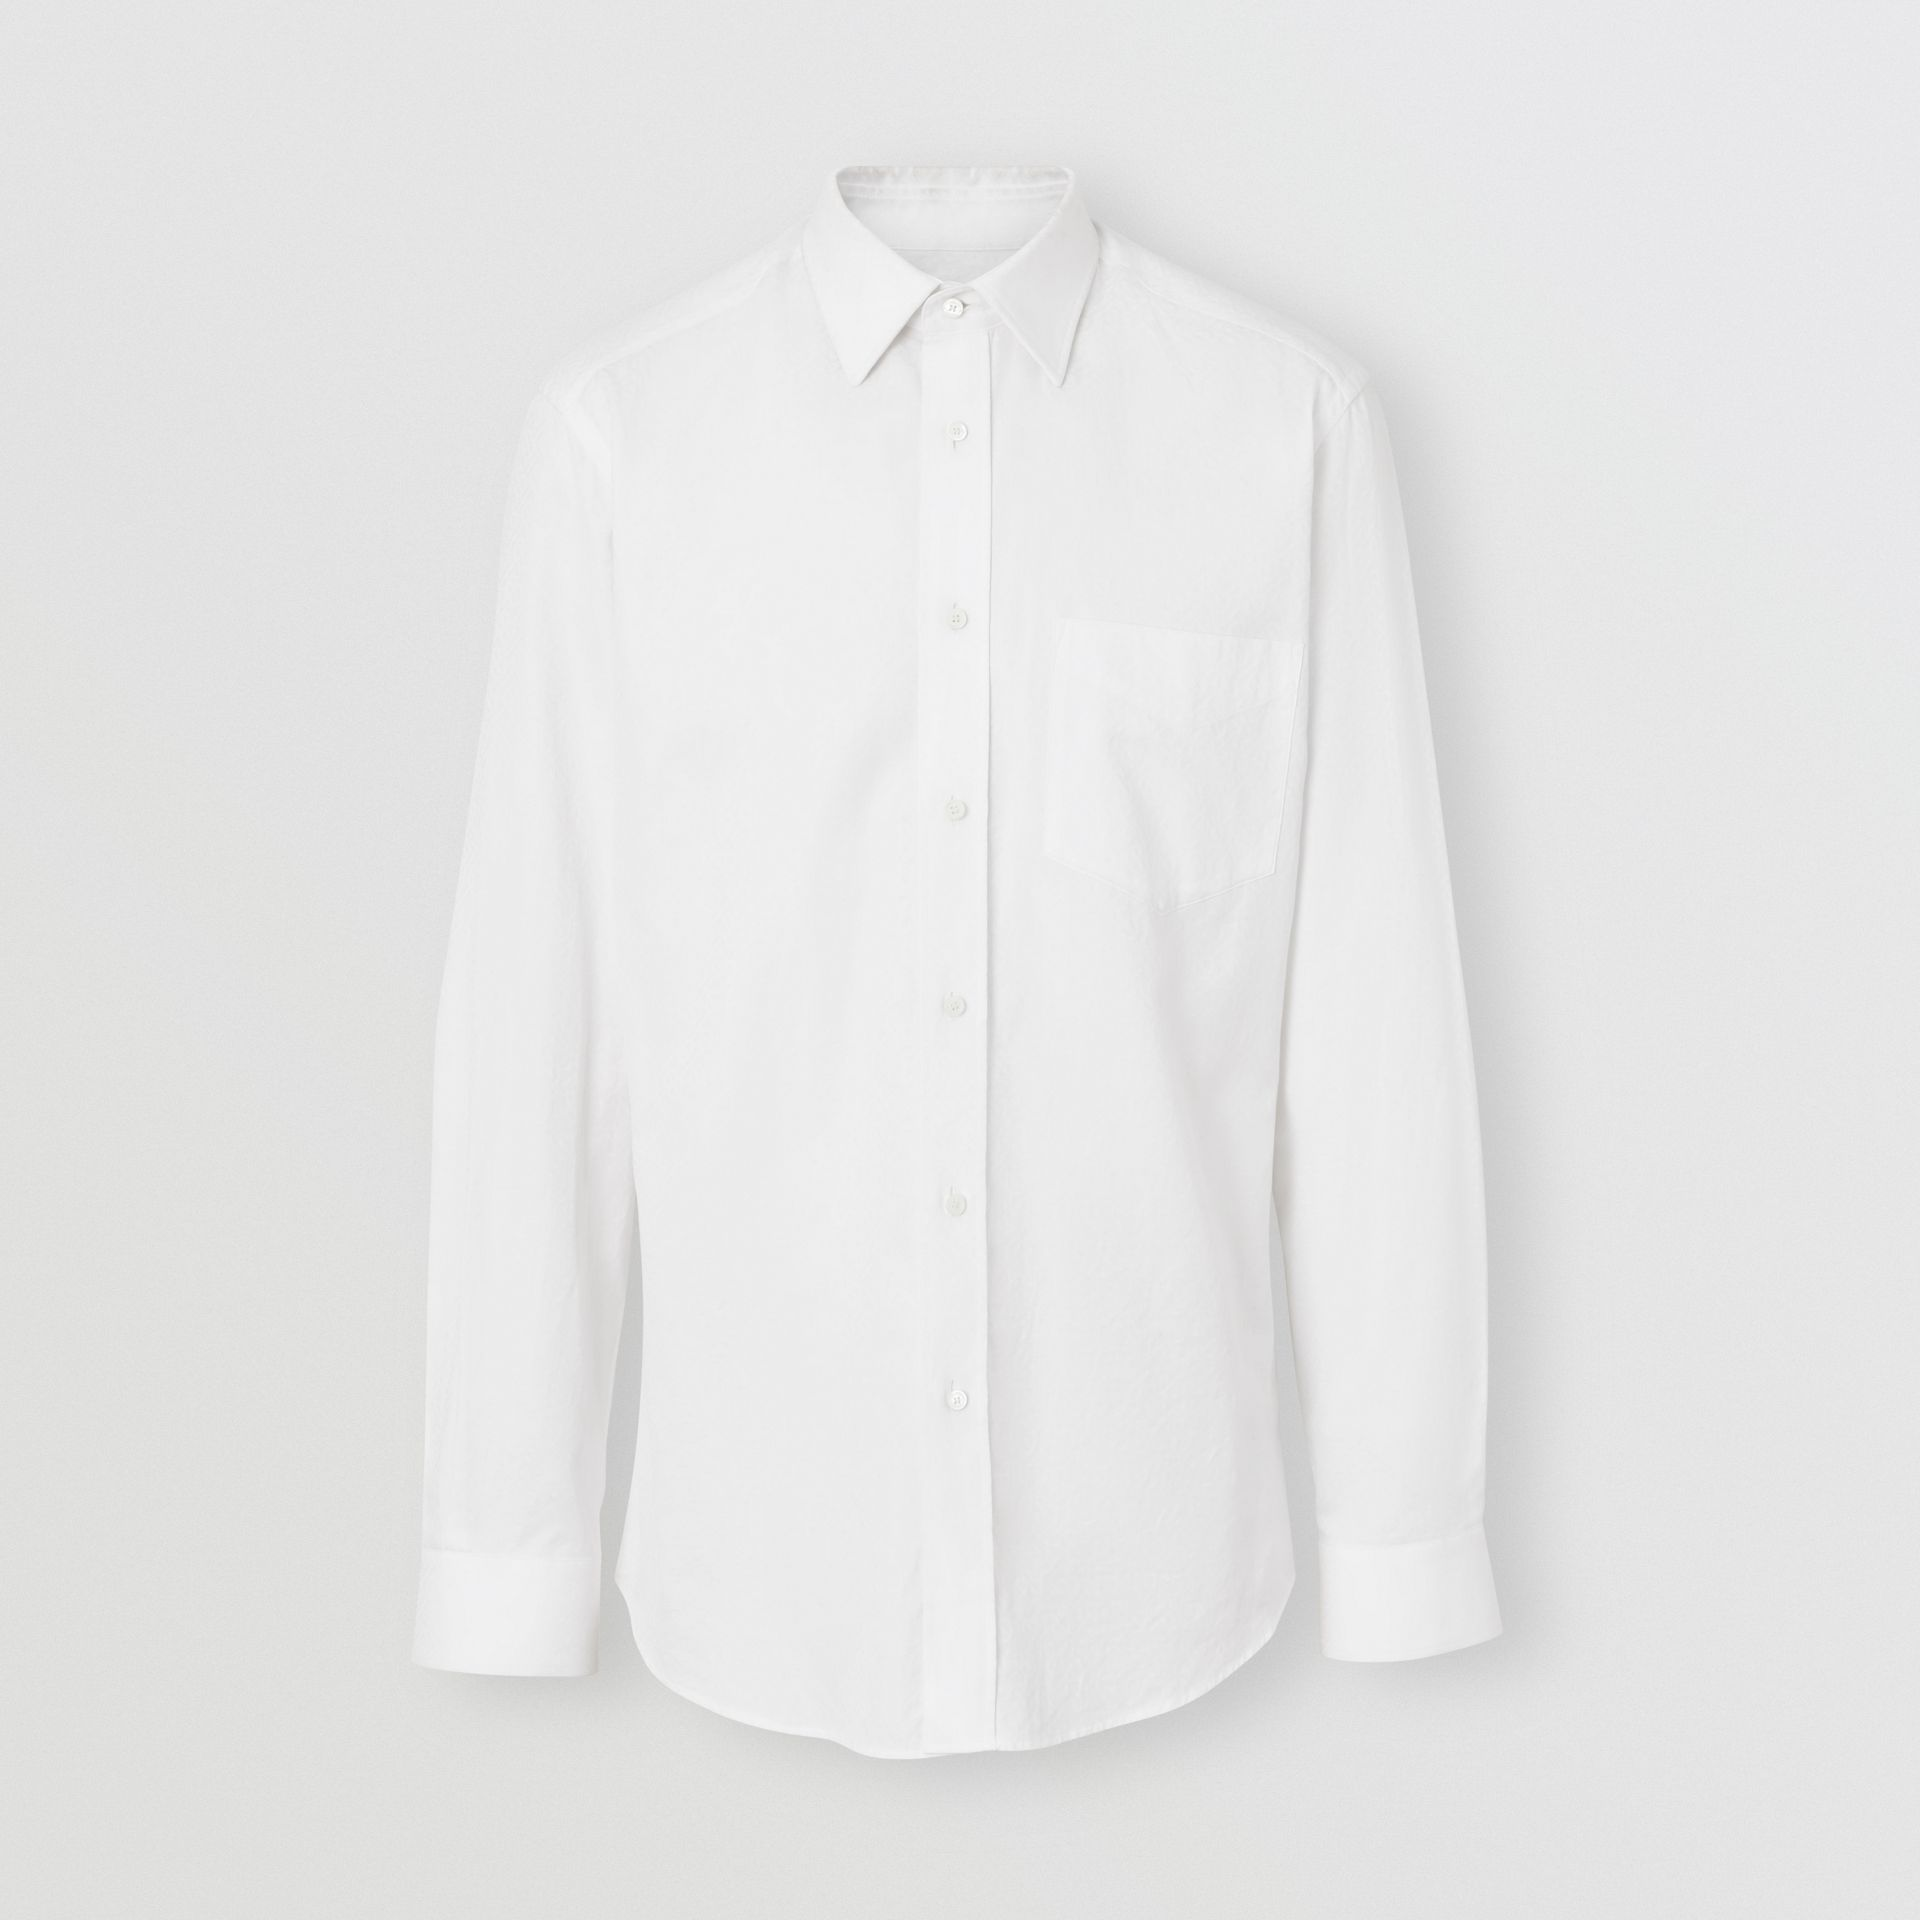 Classic Fit Monogram Cotton Jacquard Shirt in White - Men | Burberry - gallery image 3